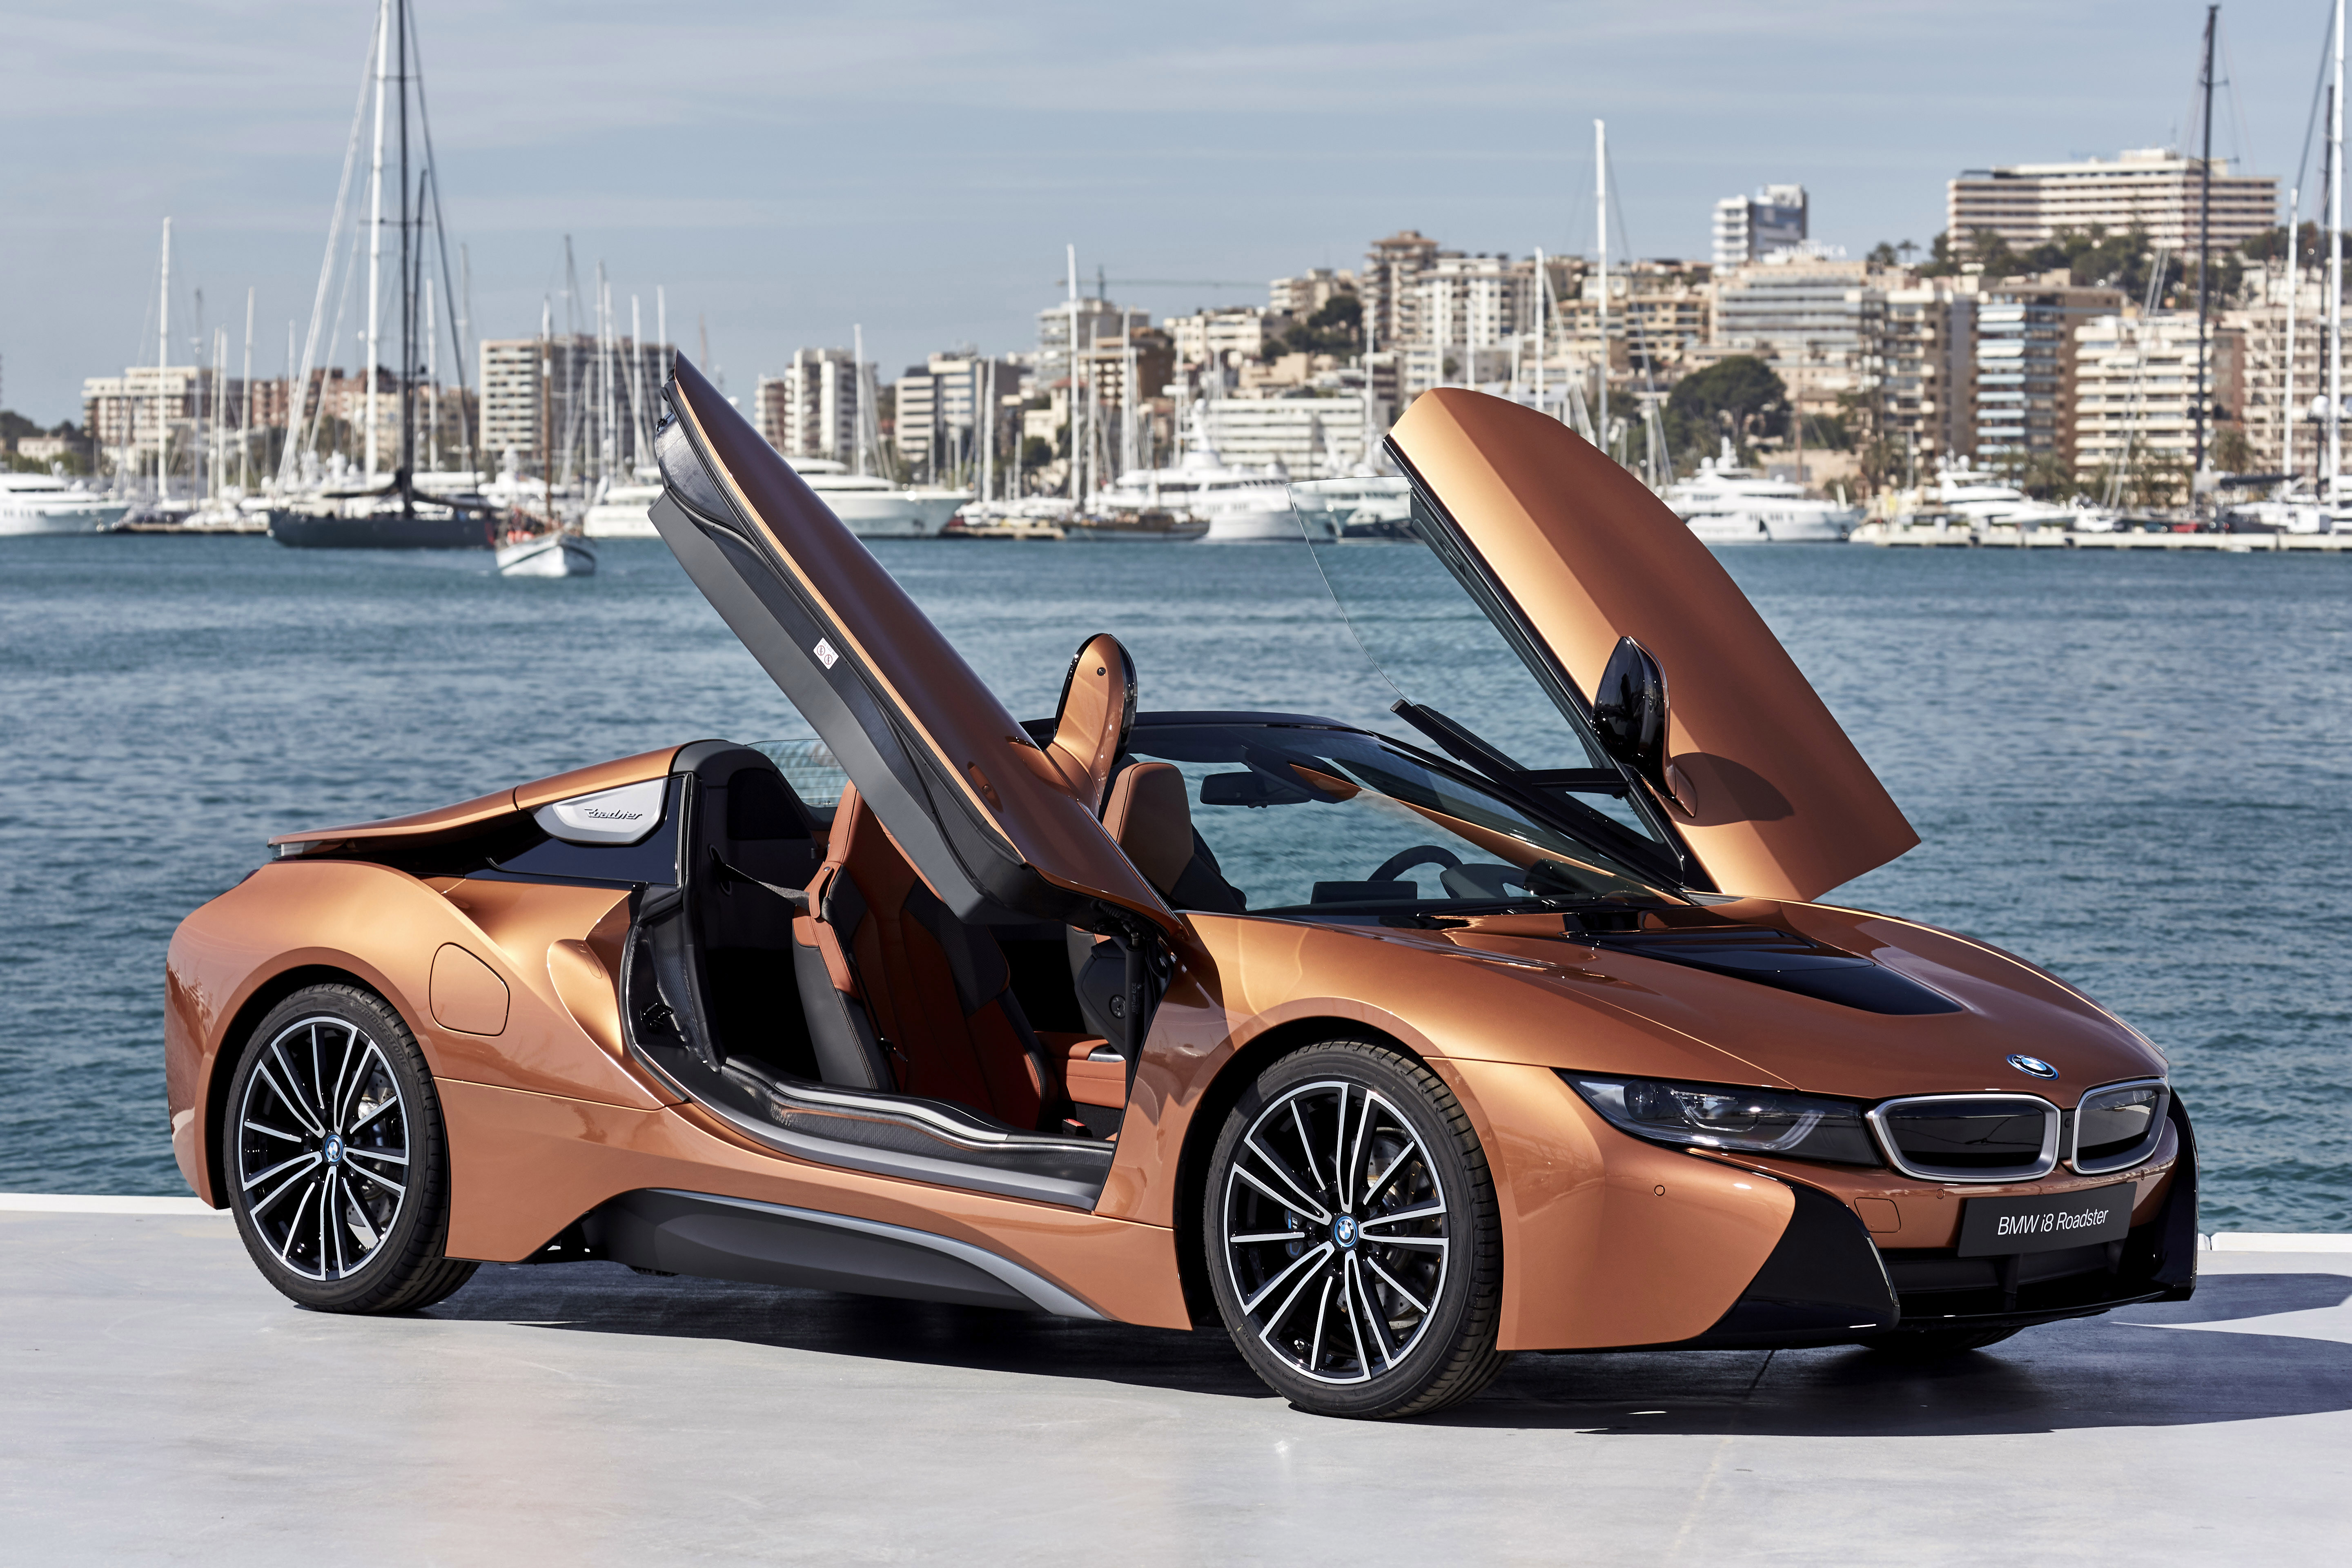 Bmw I8 Roadster Launched In Malaysia Rm1 5 Million Paul Tan